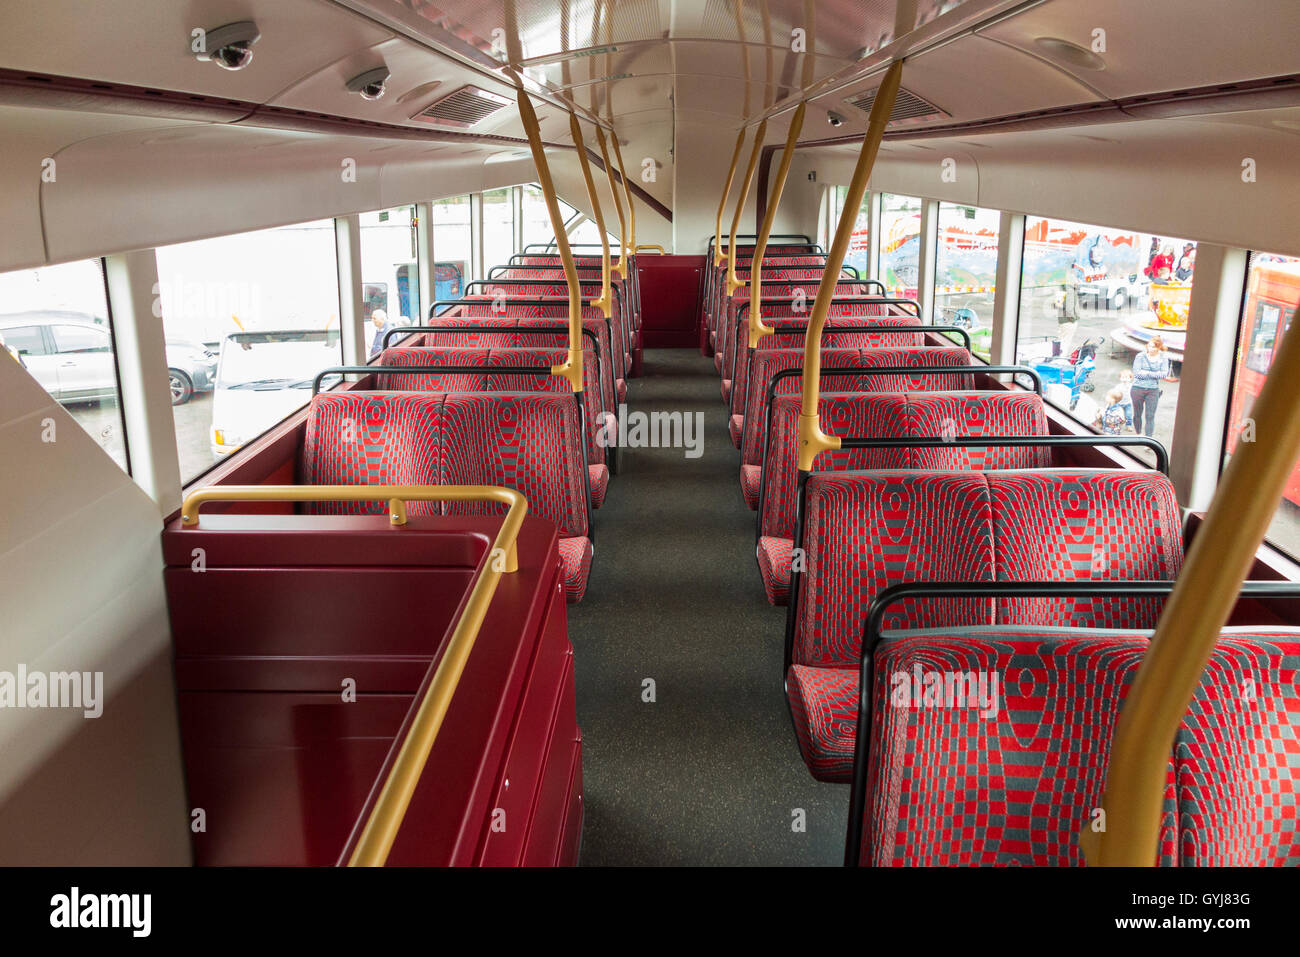 Routemaster double decker bus / bus's / buses top deck with seats / seat / seating. - Stock Image